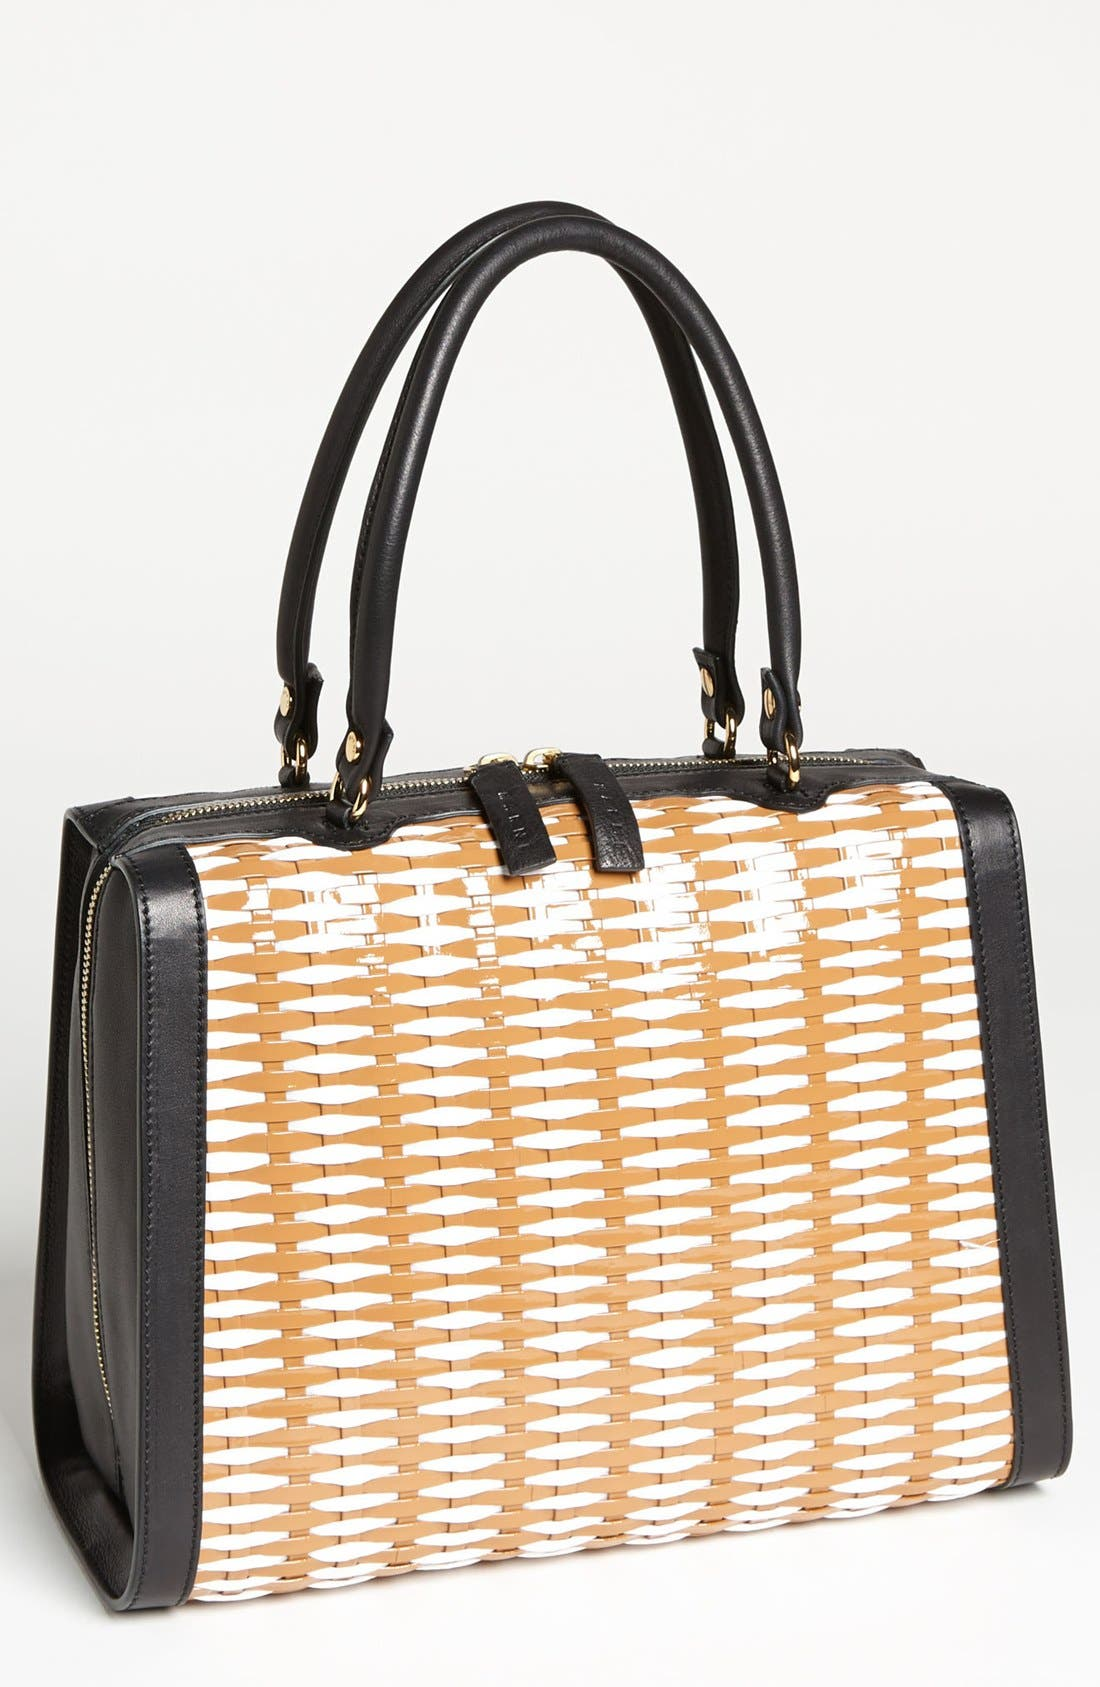 Alternate Image 1 Selected - Marni Woven Leather & Raffia Satchel